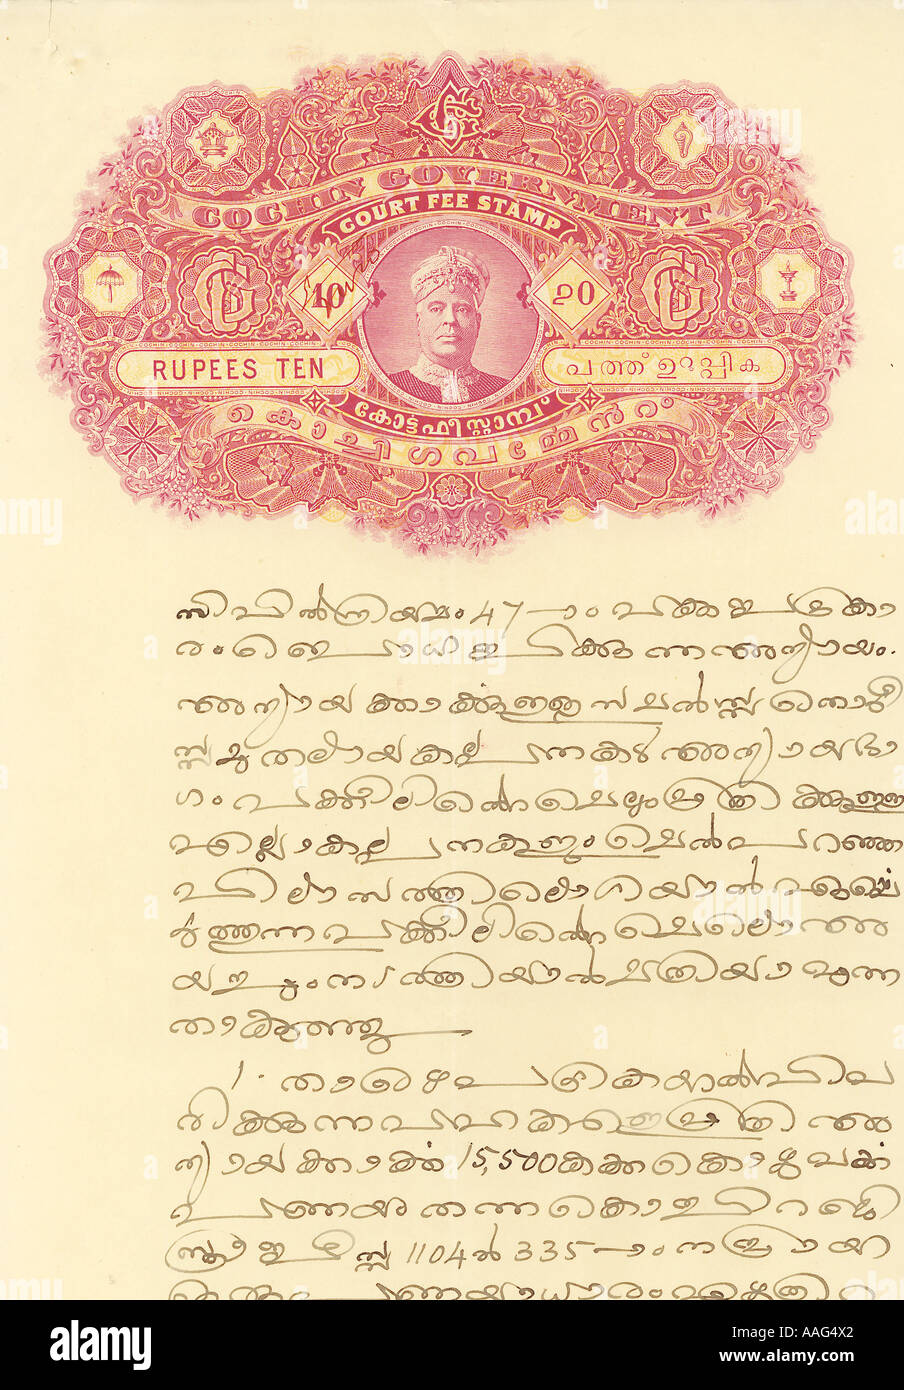 DDR78407 Court Fee Stamp Paper Rupees Ten Mid 20th Century Cochin Government India